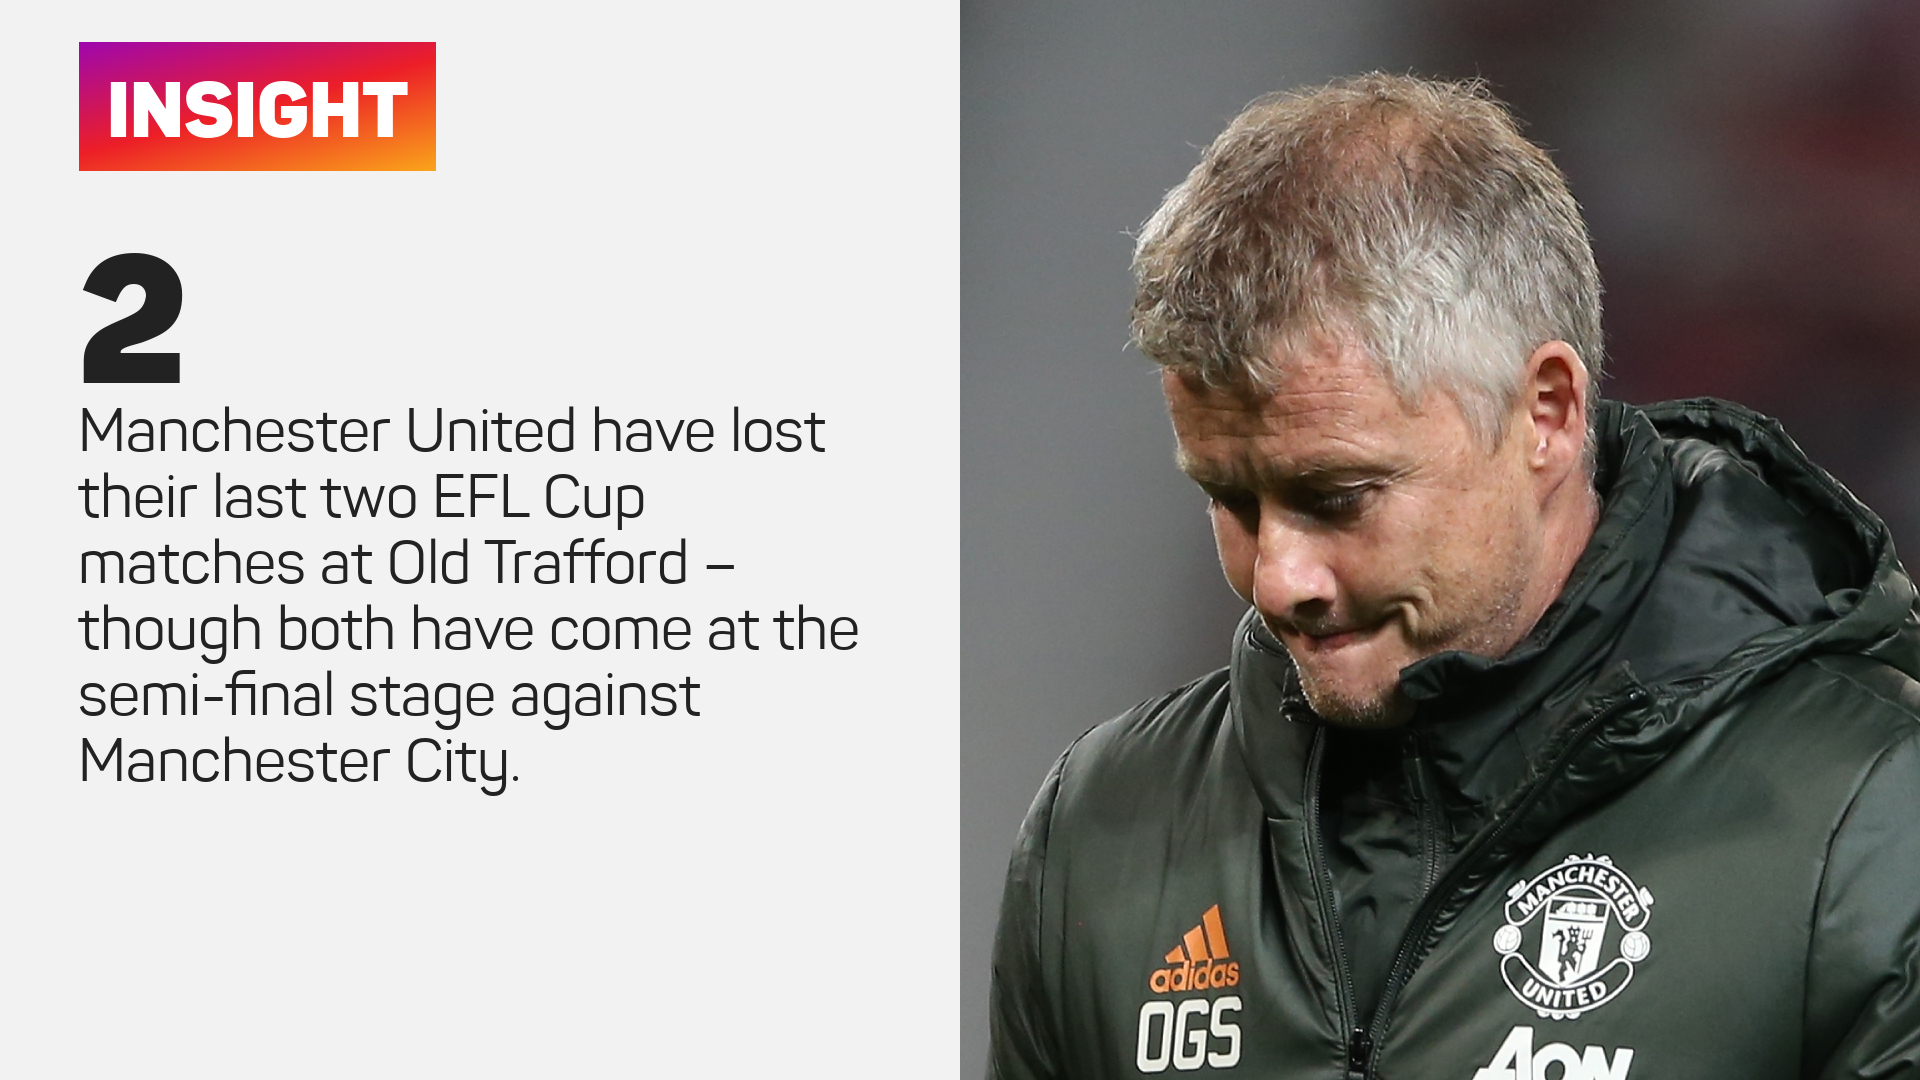 Manchester United have lost their last two EFL Cup matches at Old Trafford